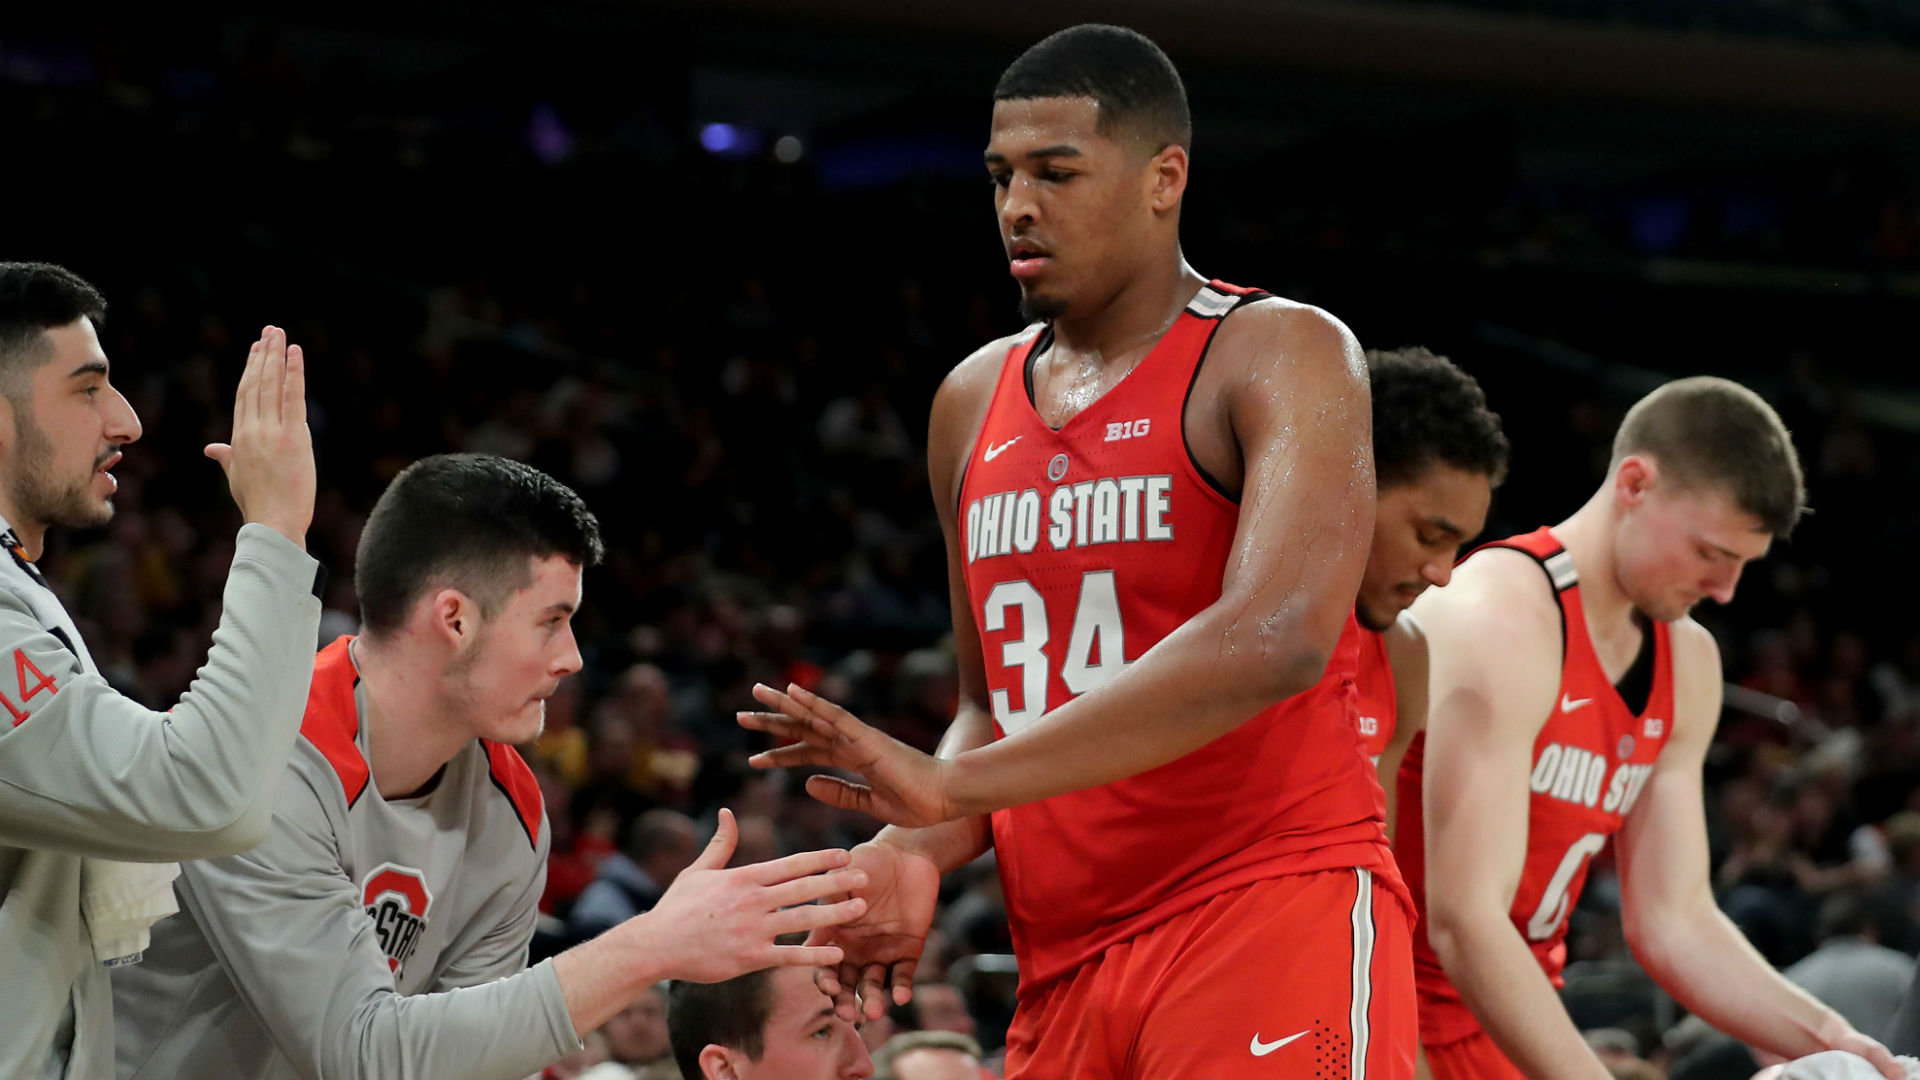 Ohio State's Kaleb Wesson suspended for violation